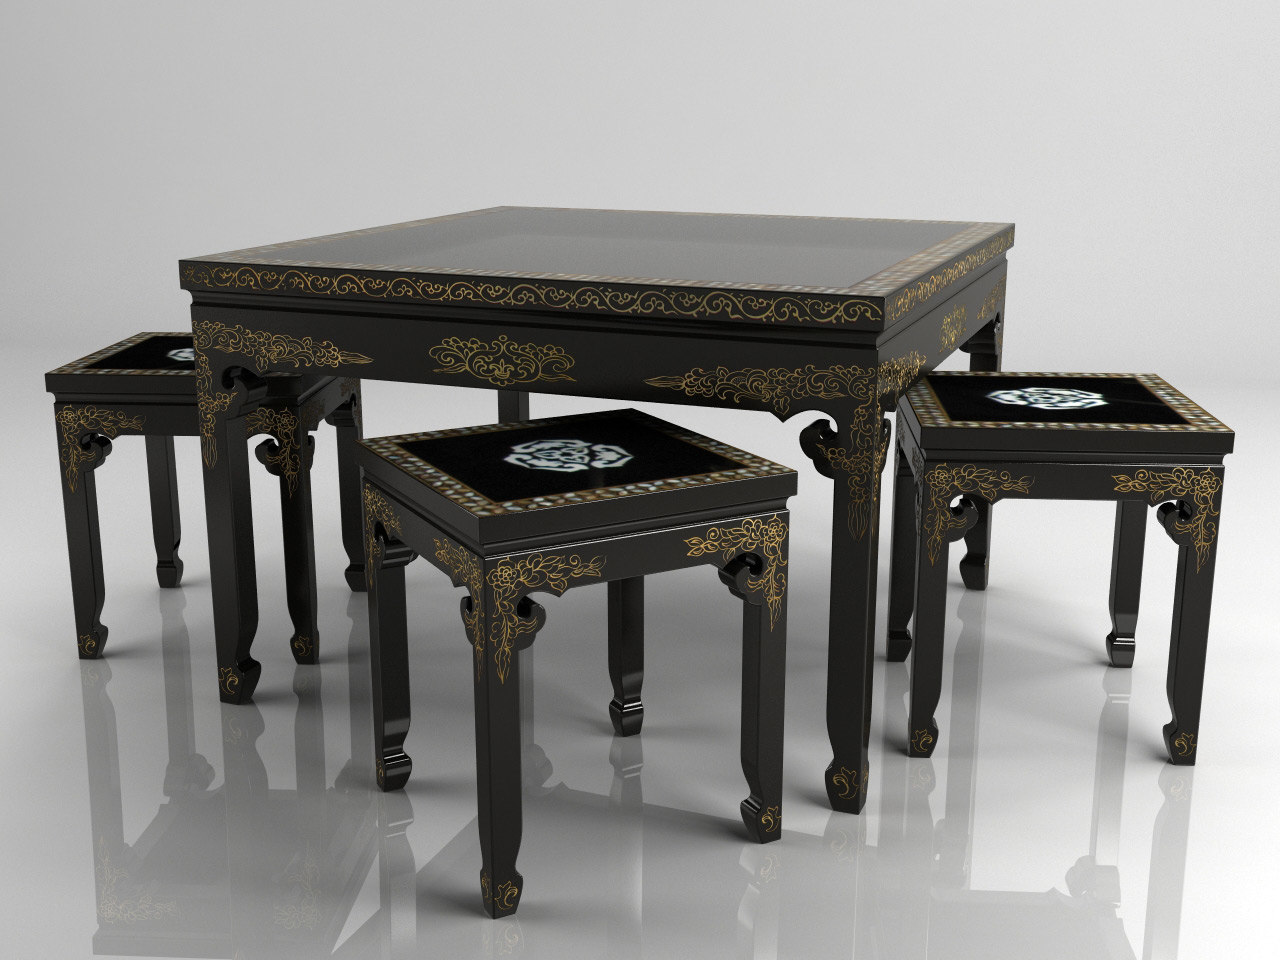 Antiquarian_little_table&chairs.jpg